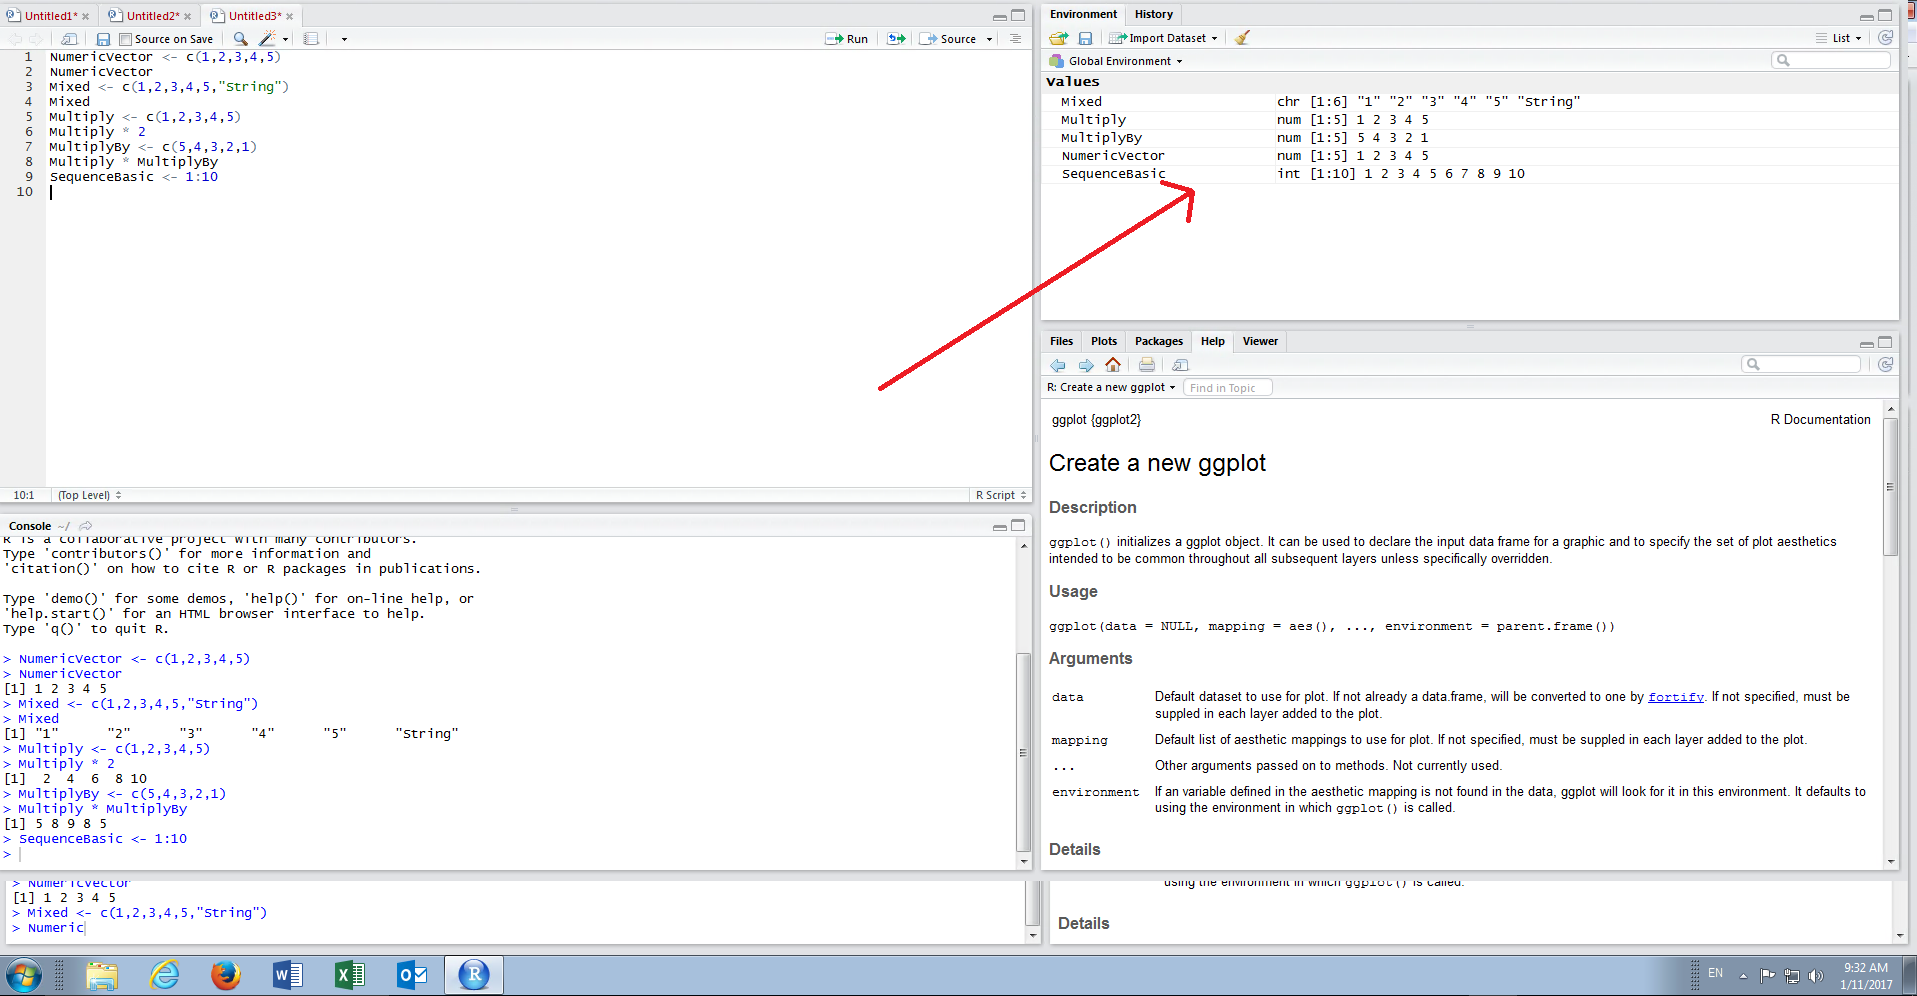 sequence-vector-written-to-rstudio-environment-variables.png